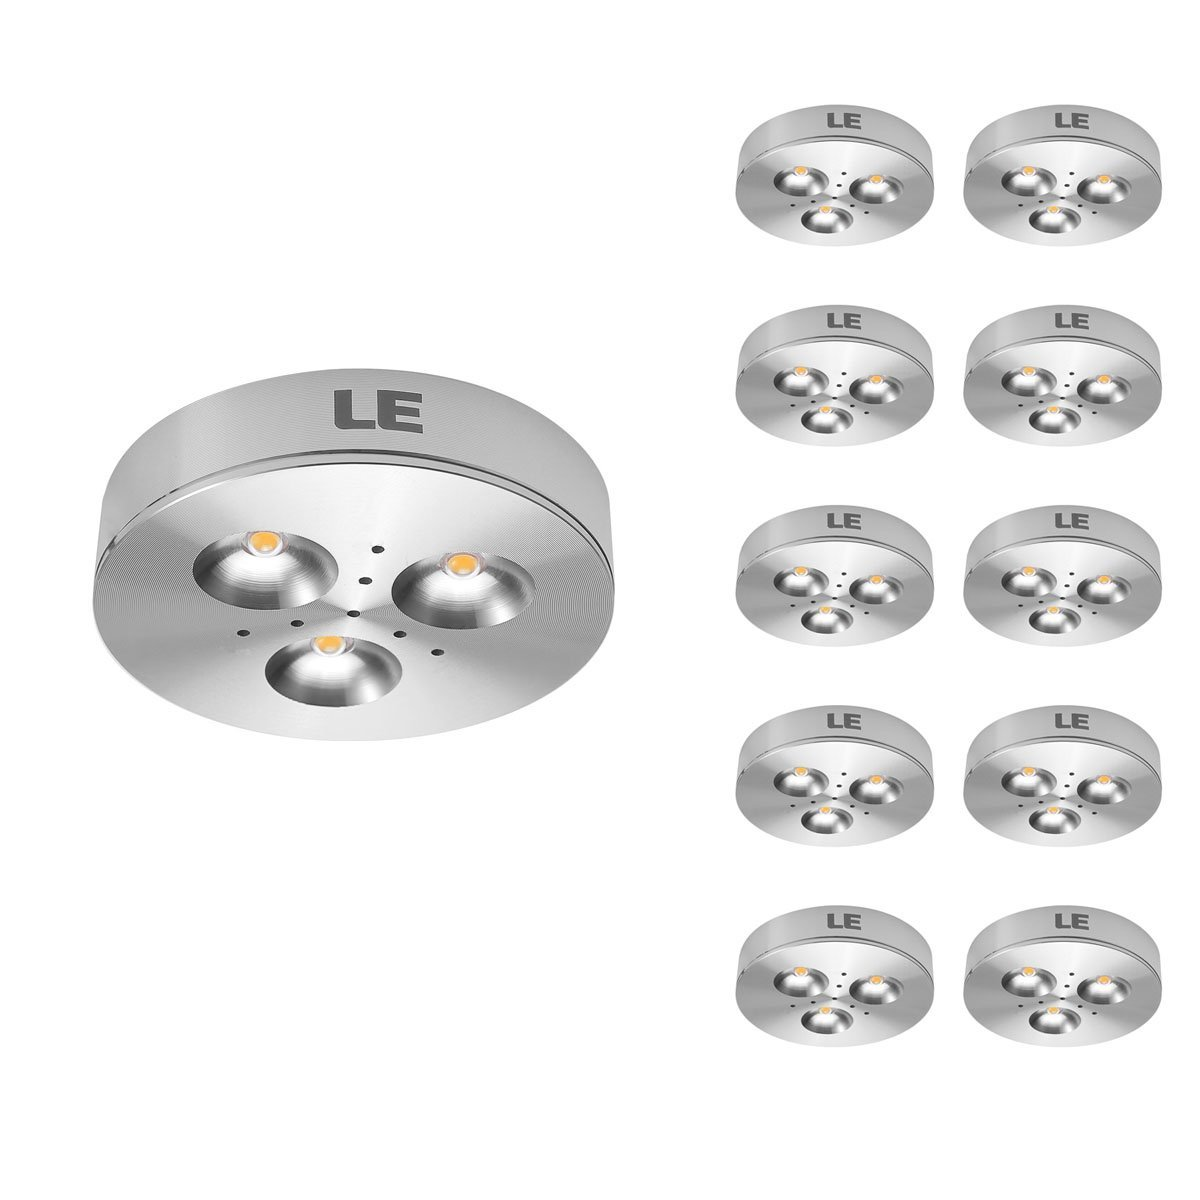 hight resolution of pack of 10 units led under cabinet lighting puck lights 12v dc under counter lighting 25w halogen replacement 240lm warm white